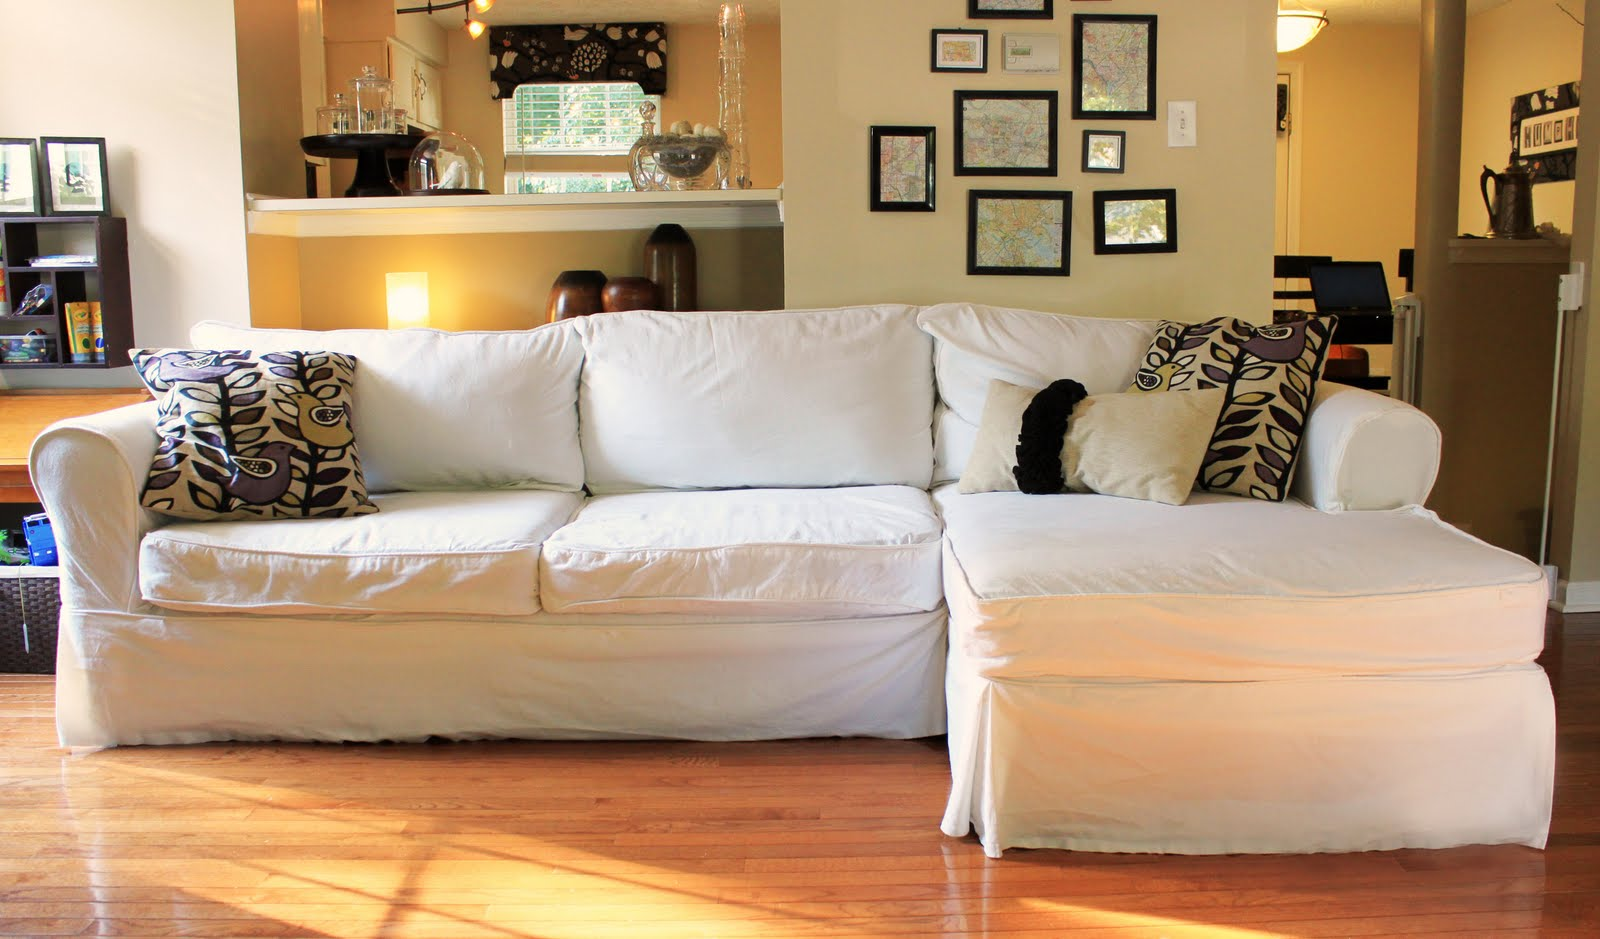 Nasty Sofa? Slipcover It!